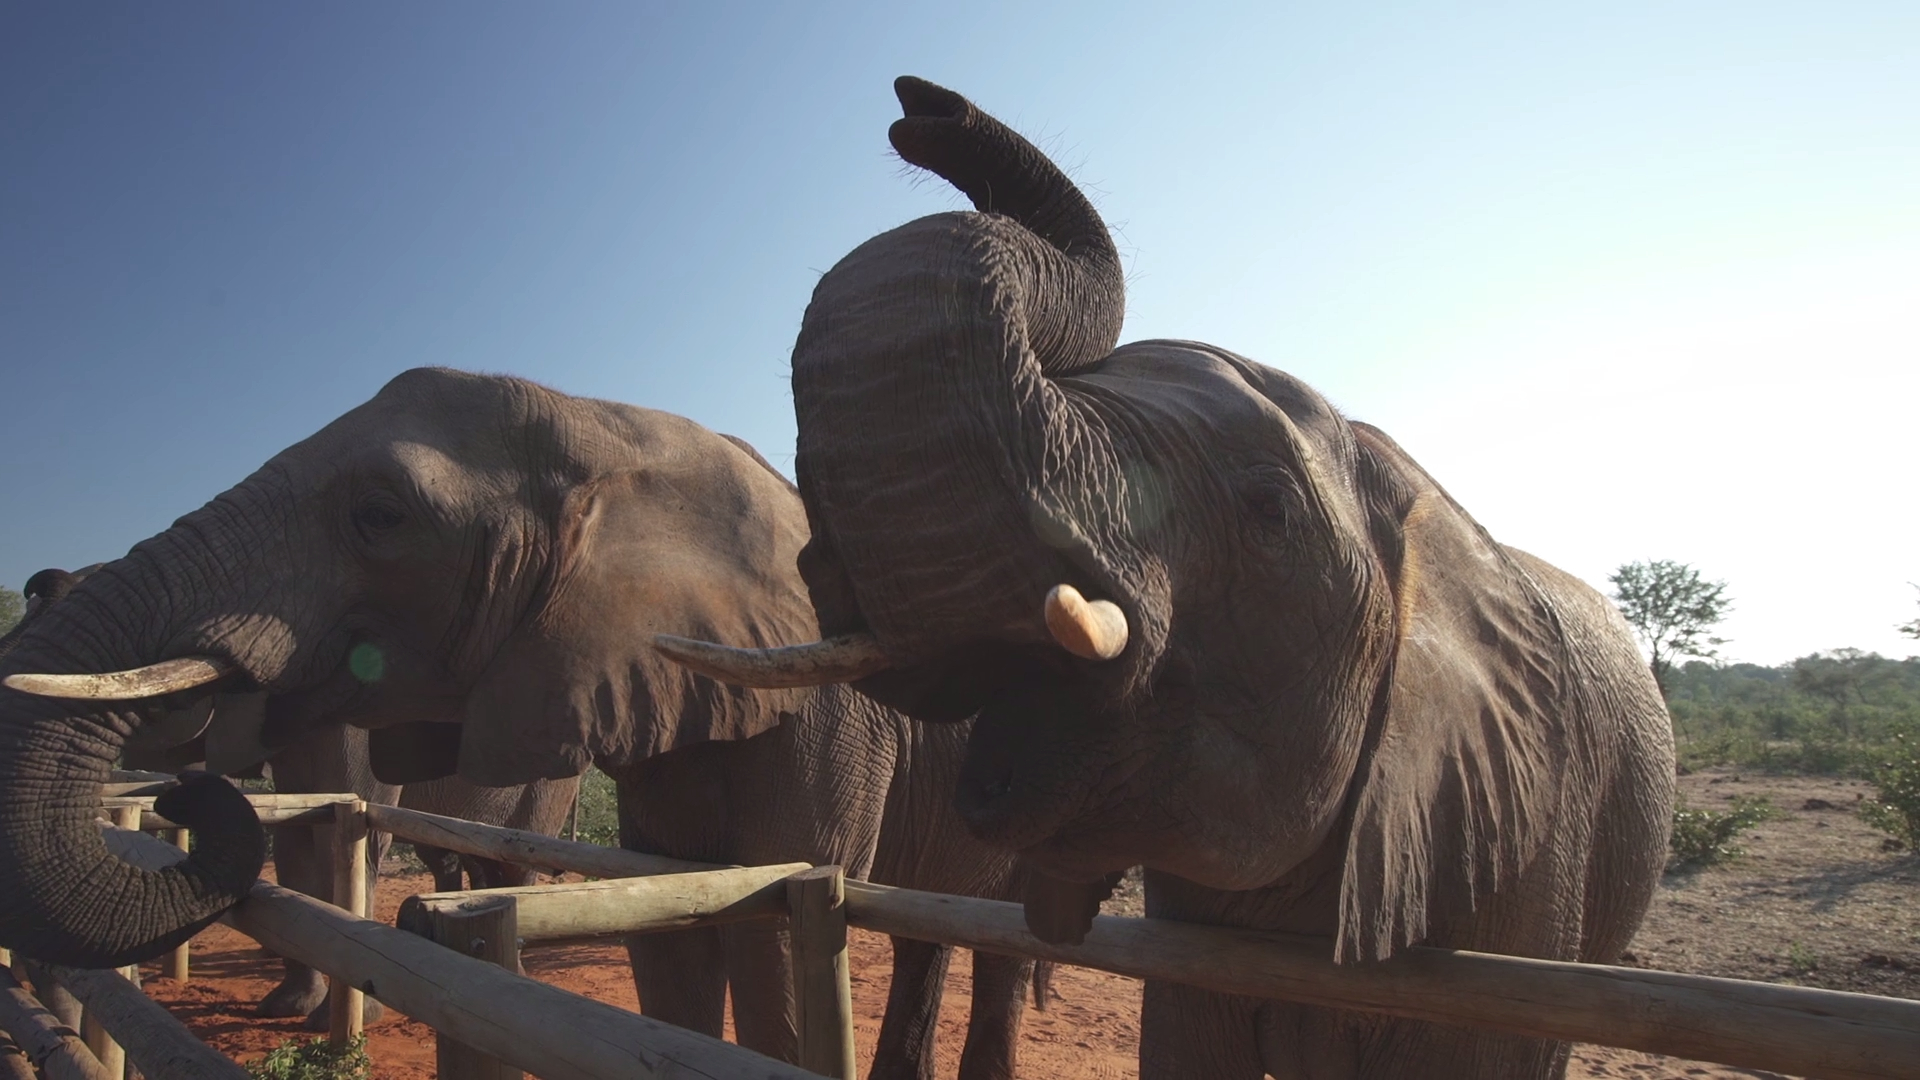 Bonus footage from Getaway's visit to Wild Horizons Elephant Sanctuary